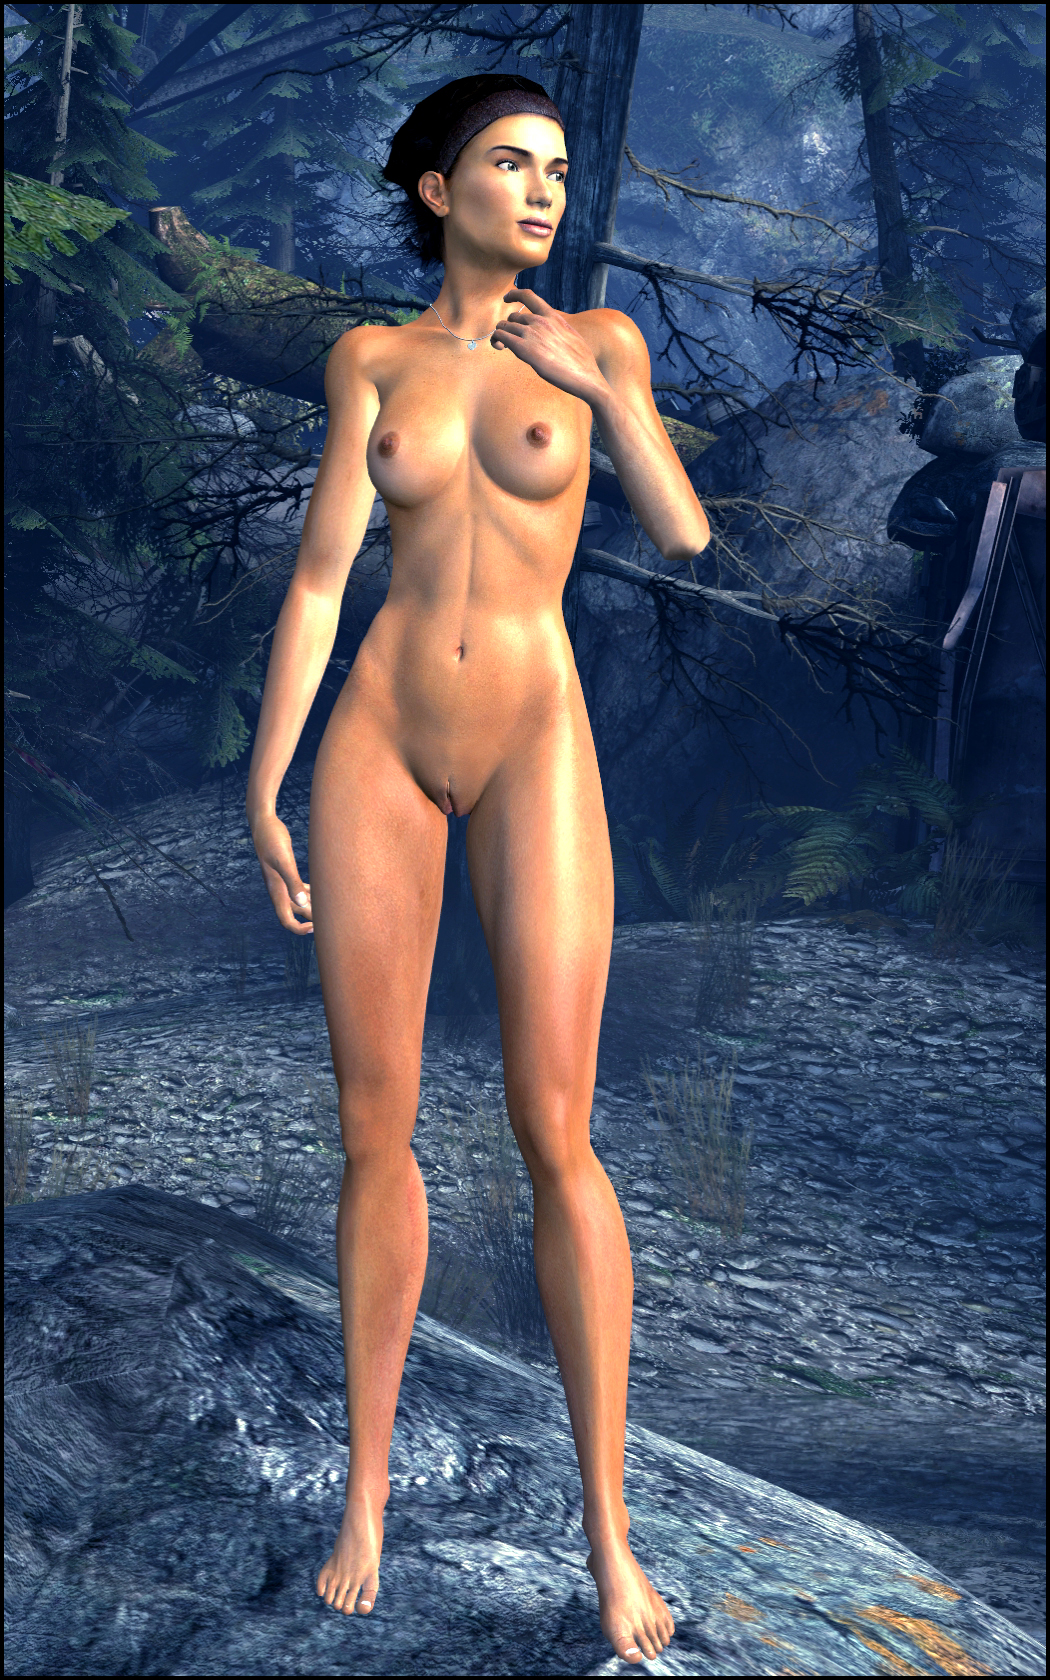 nude female fallout mod 4 How old is pearl from splatoon